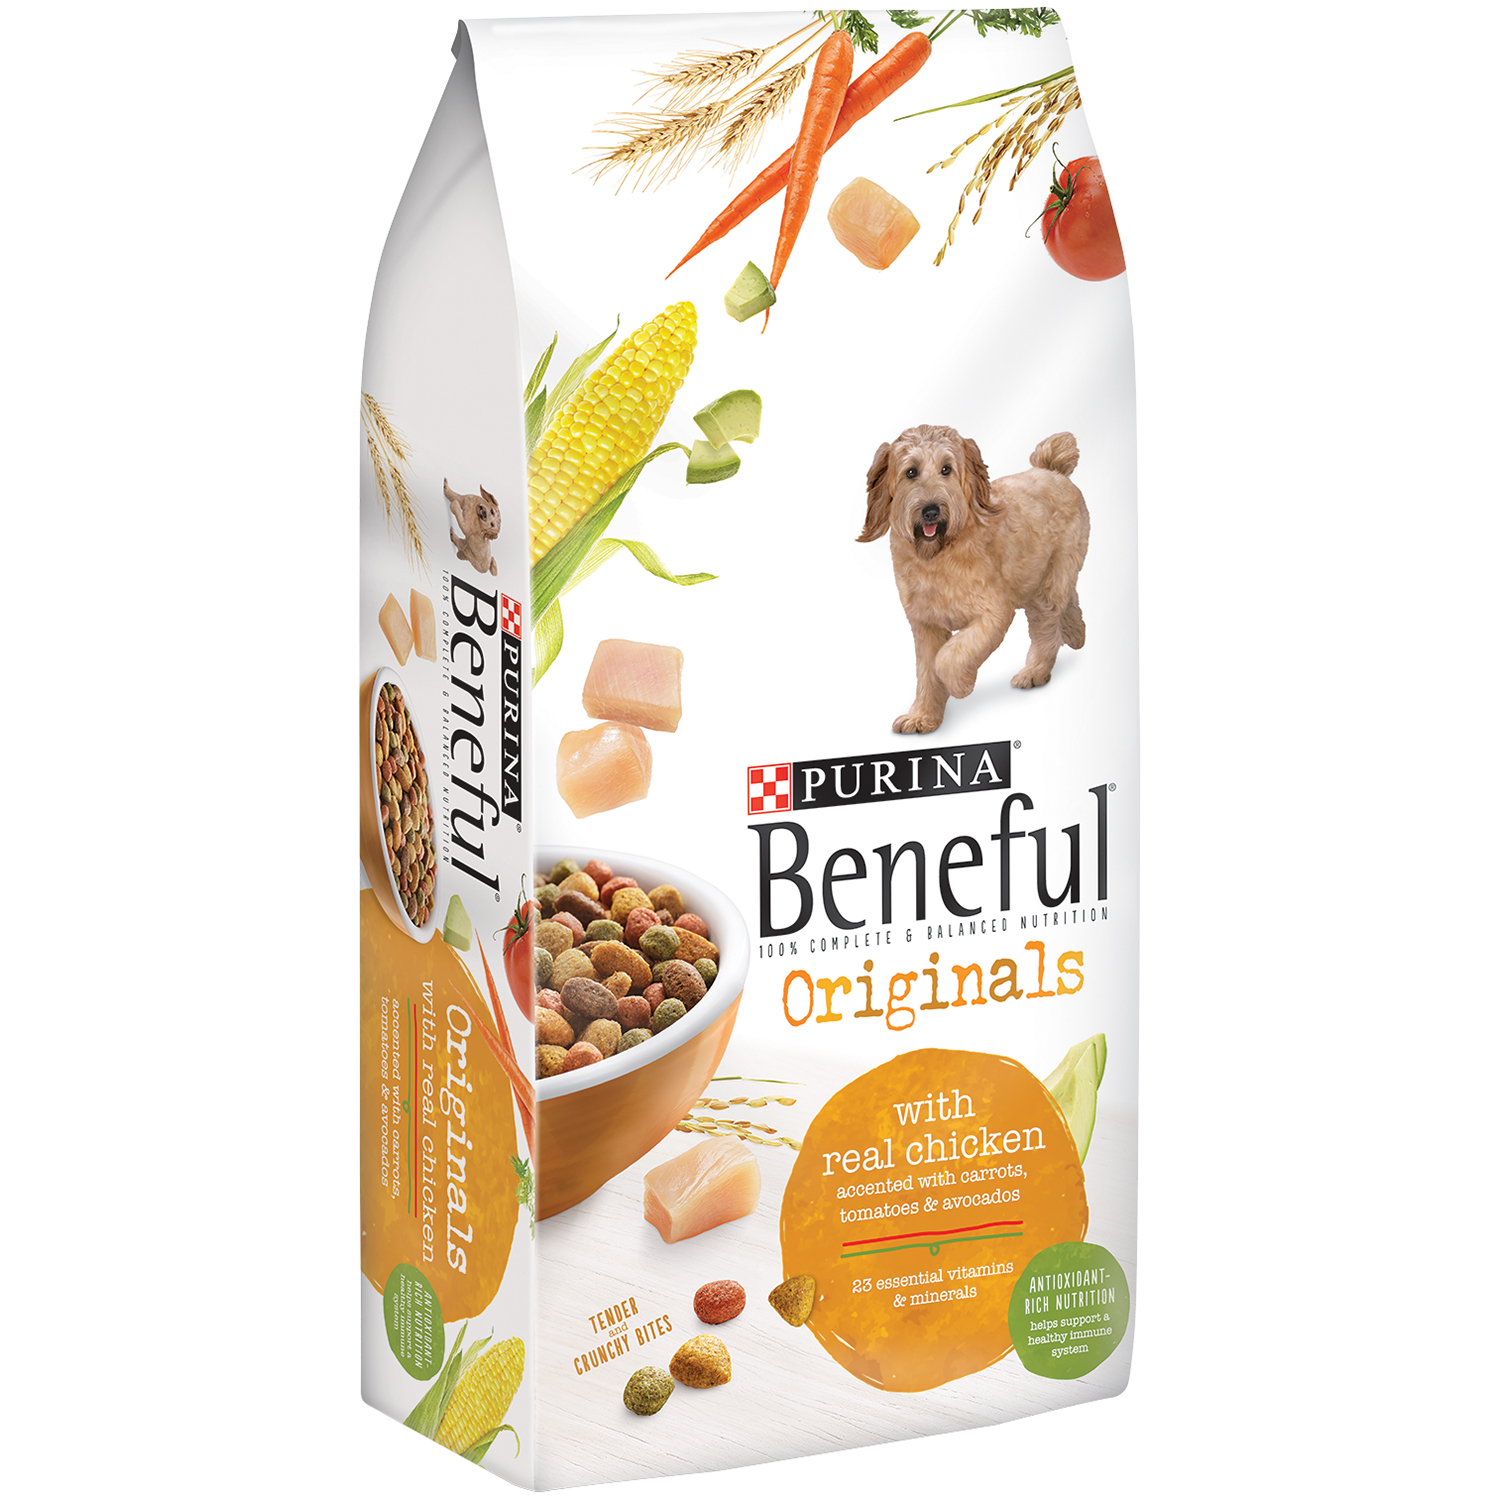 Purina Beneful Originals With Real Chicken Dog Food 3.5 lb. Bag